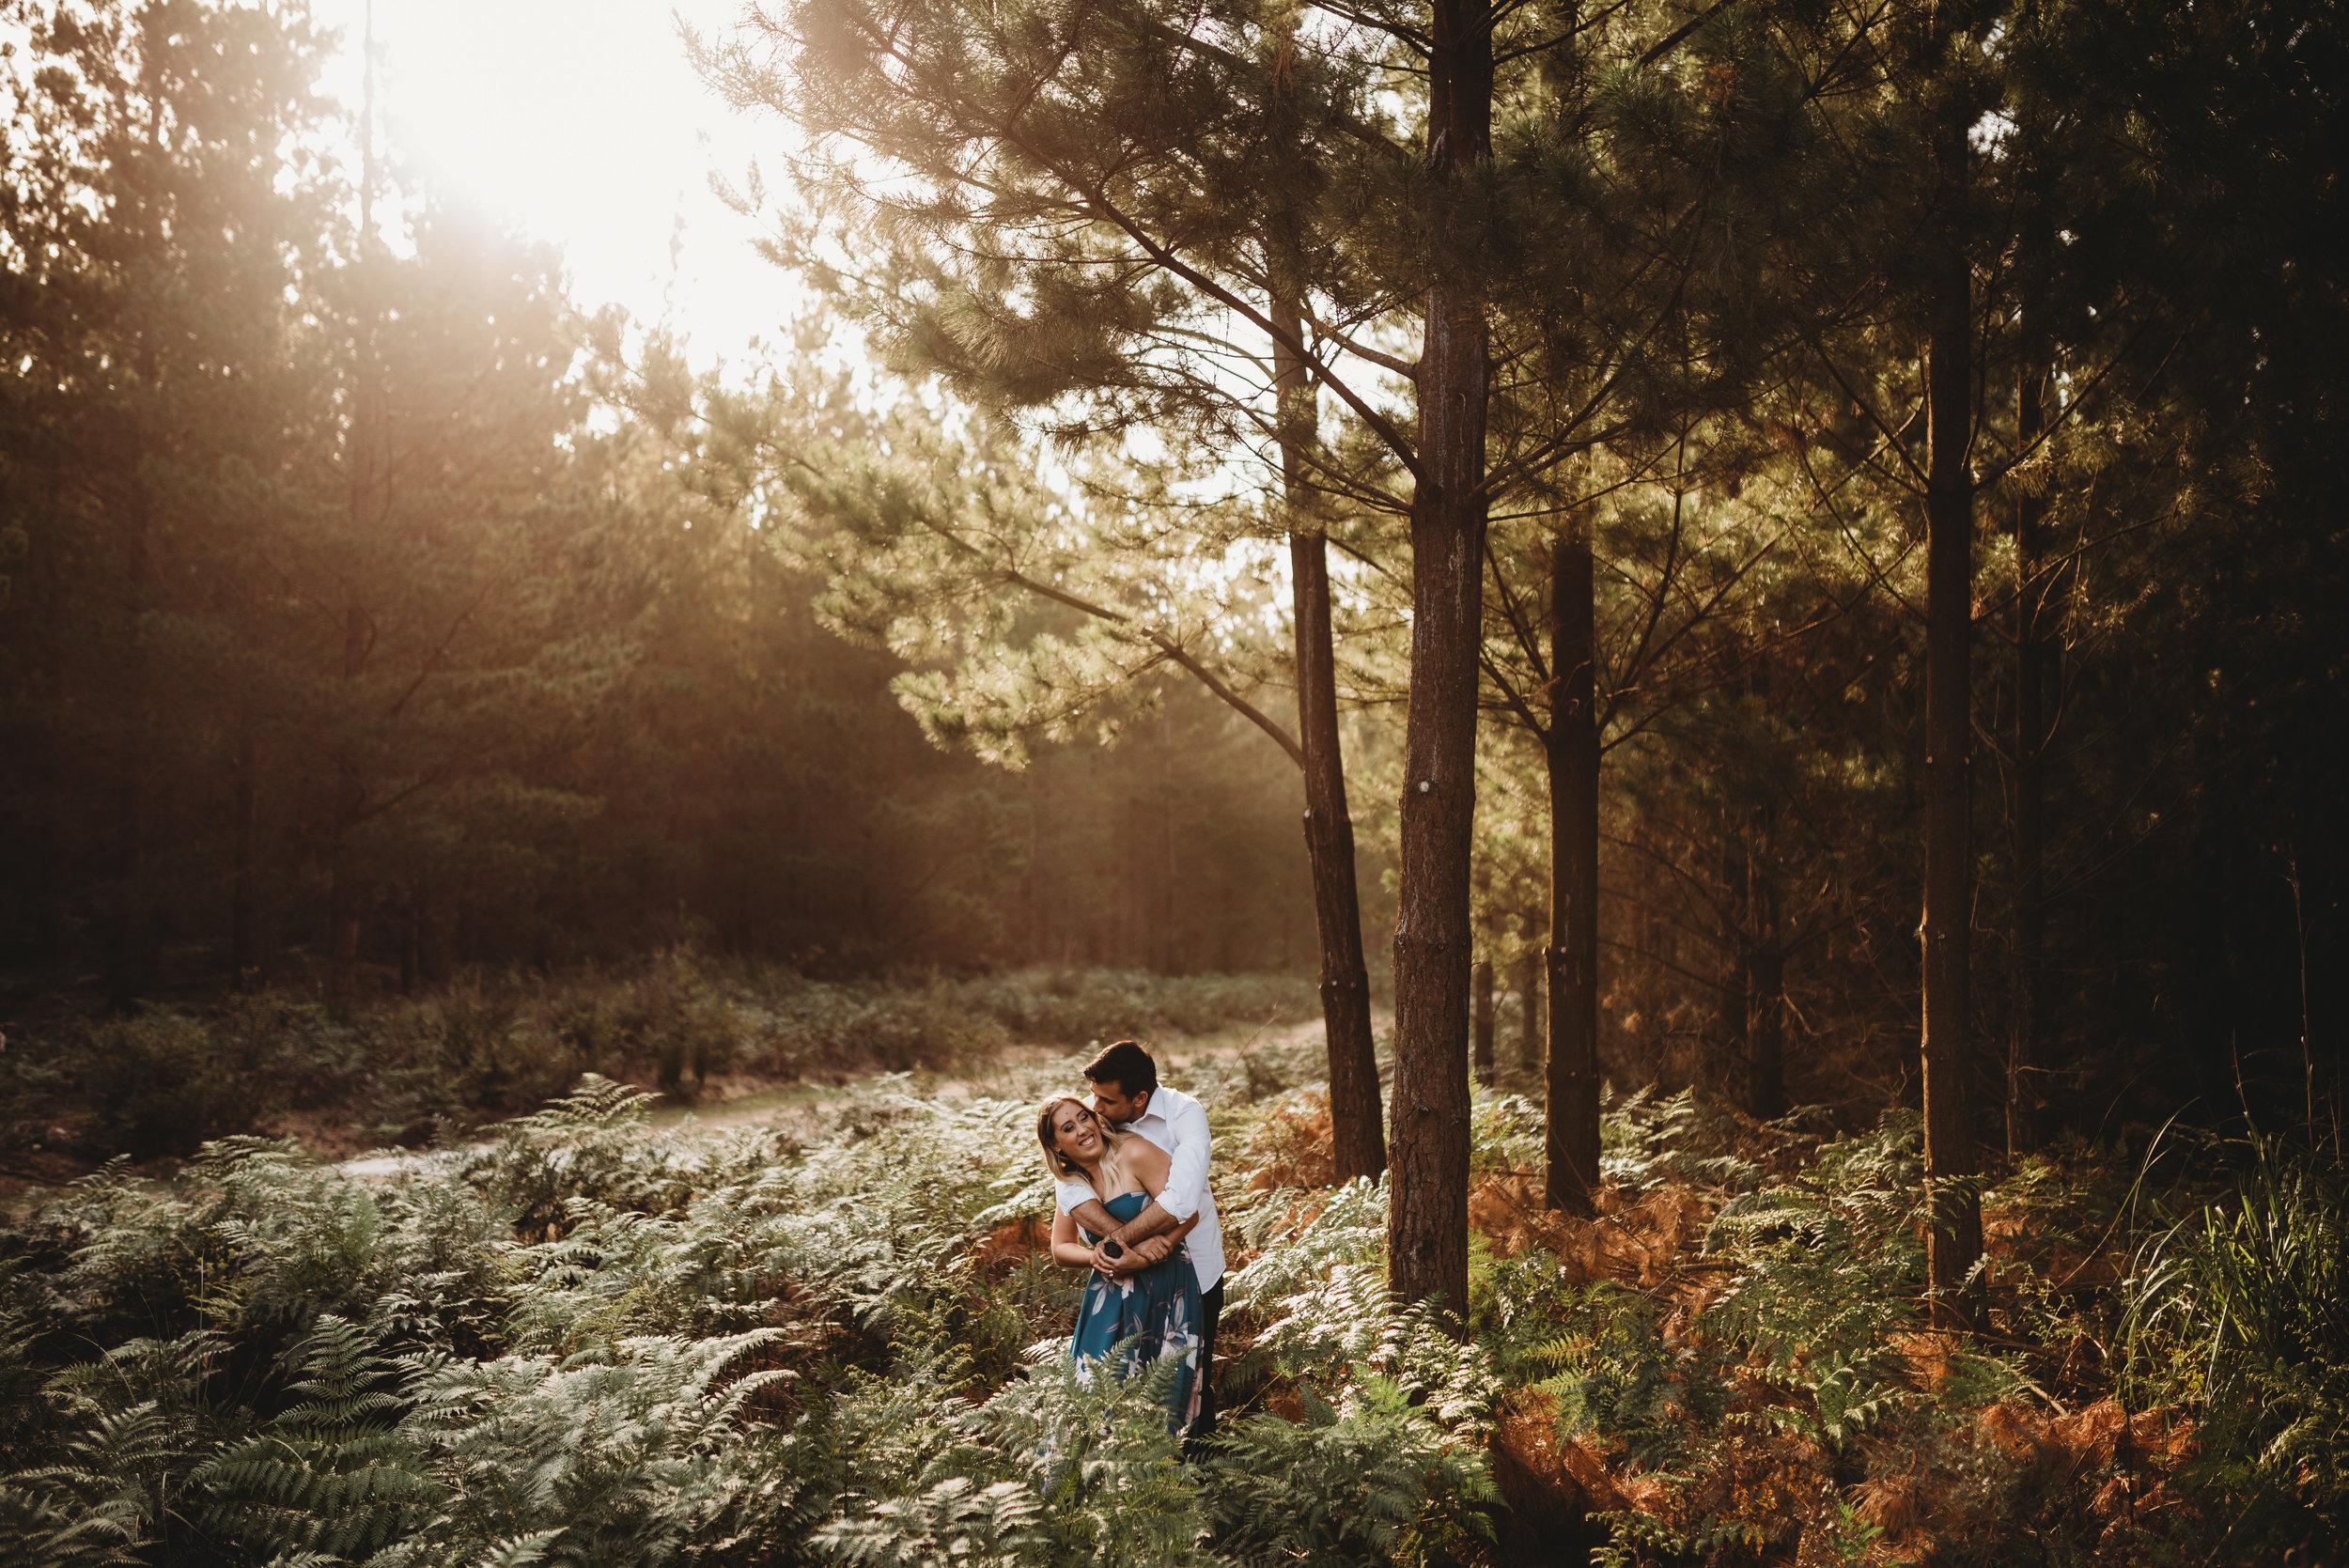 Teniele & Adriaan - Southern Highlands Forest Engagement     15th January 2019